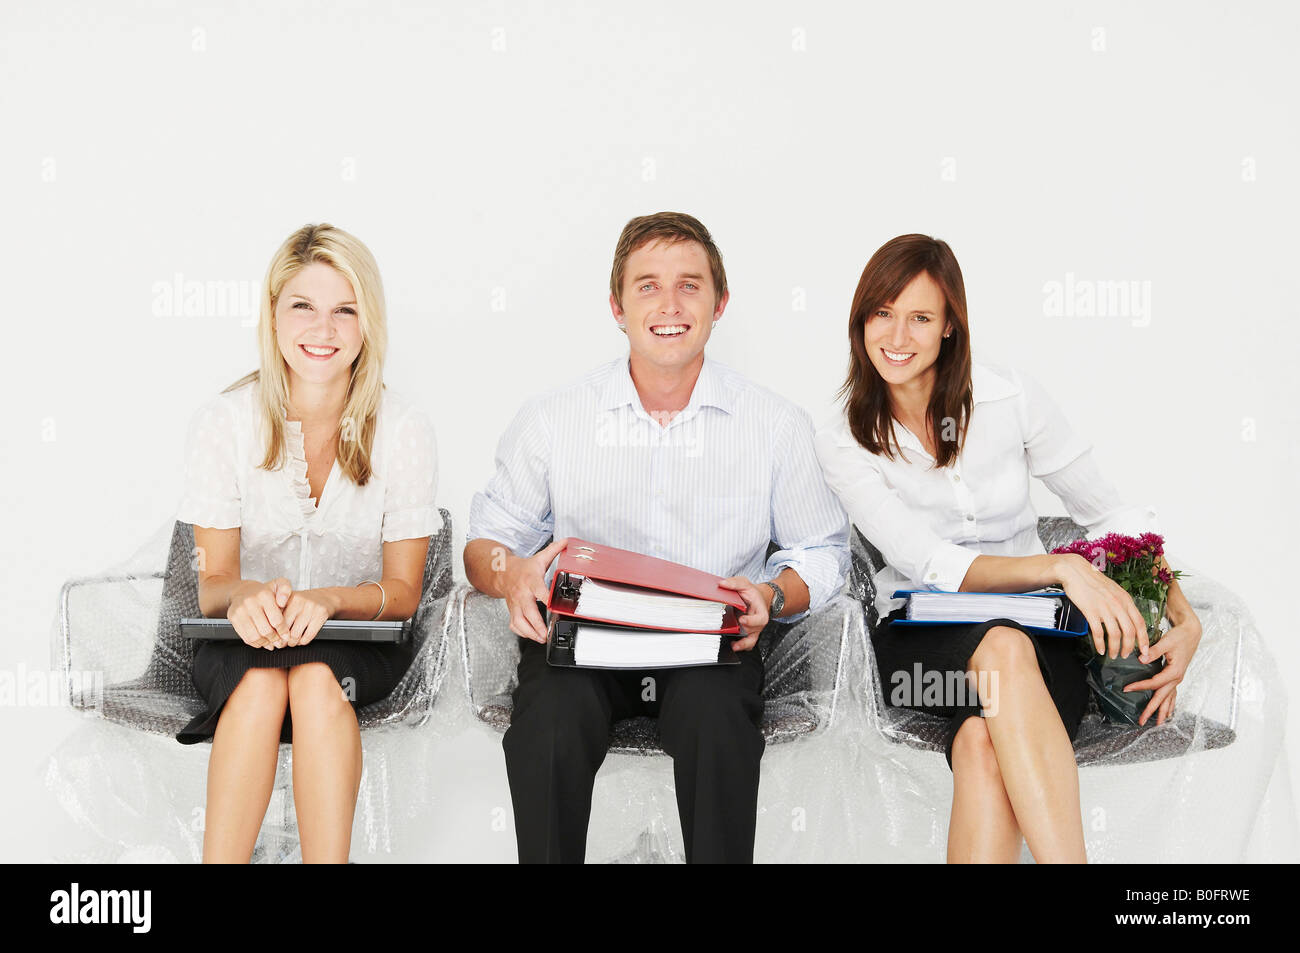 Three people smiling in new office - Stock Image